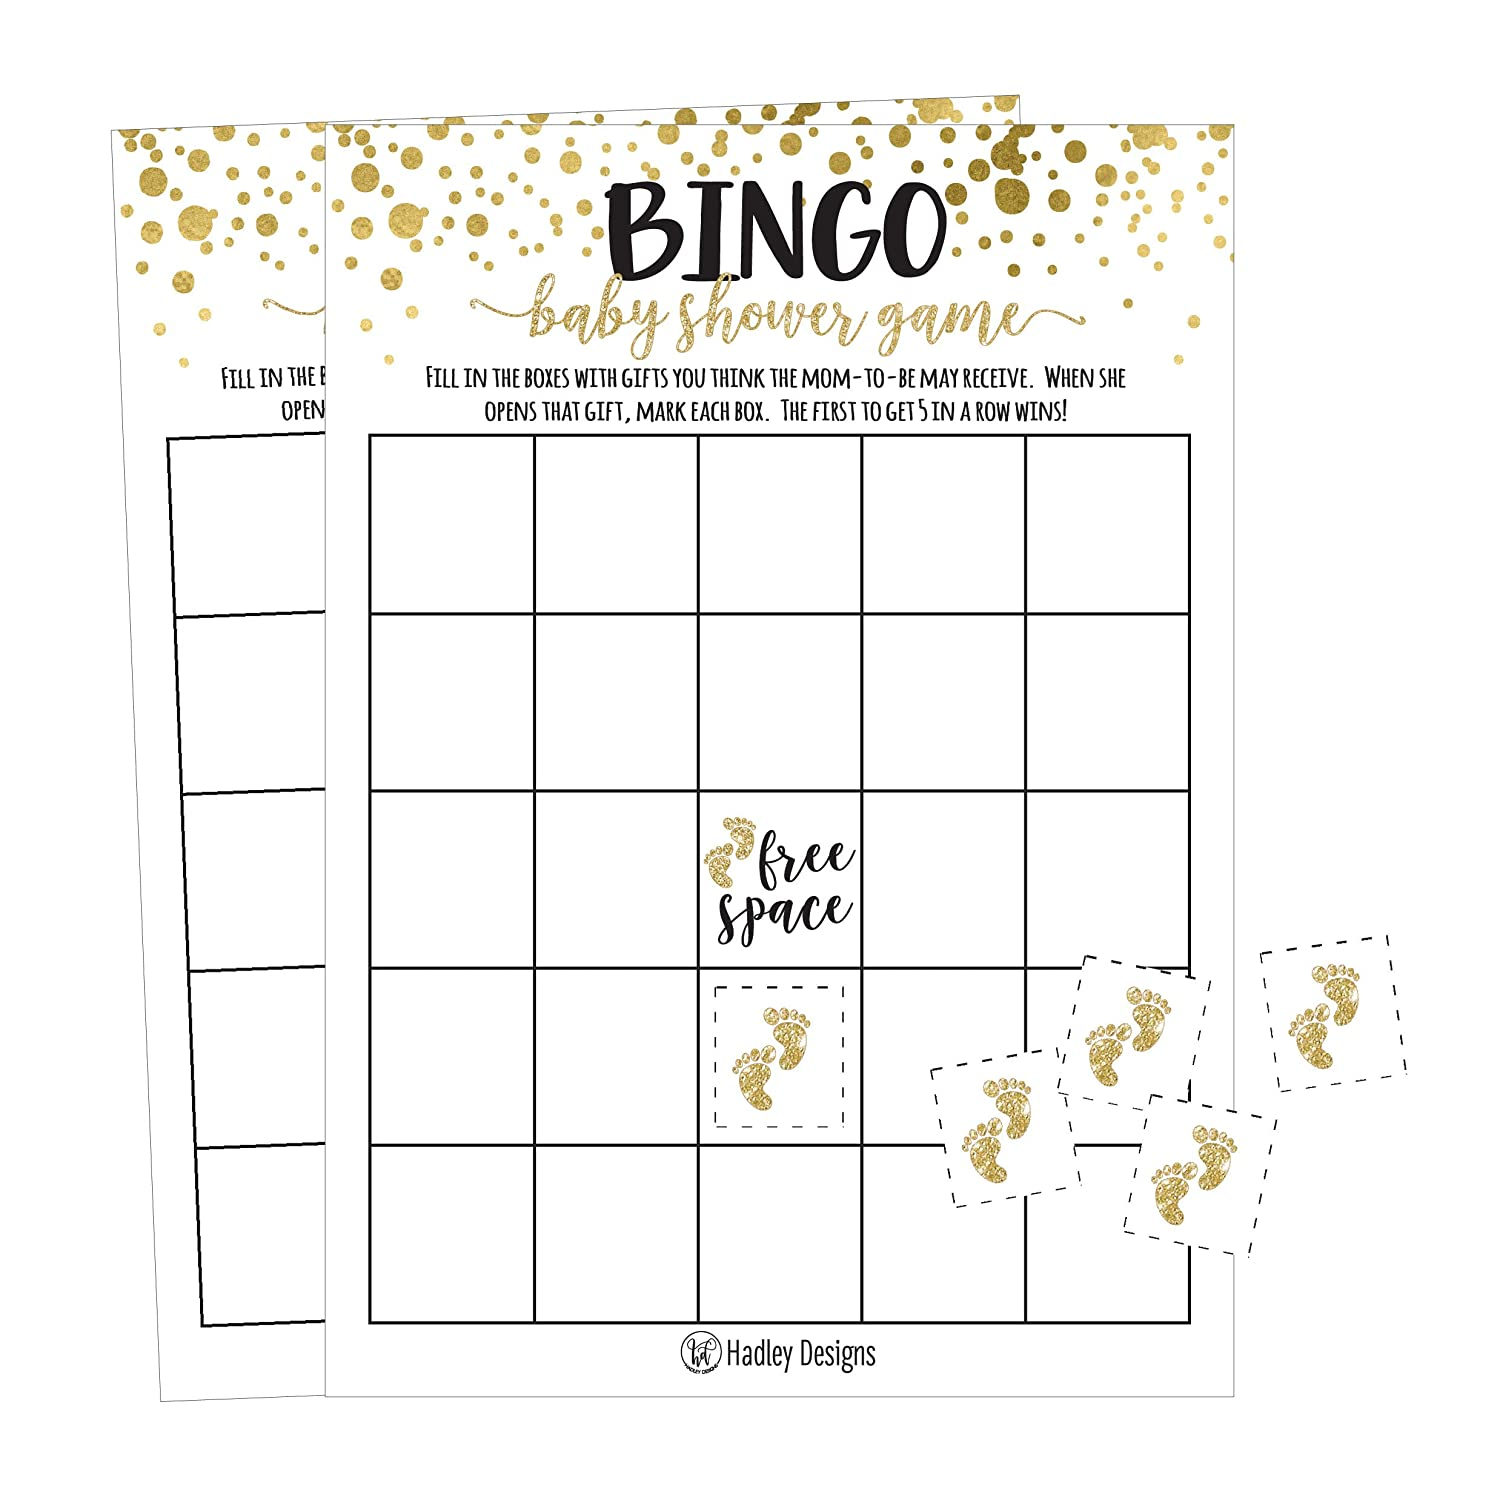 photo relating to Addition Bingo Printable known as 25 Gold Bingo Match Playing cards For Kid Shower, Majority Blank Bingo Squares, As well as 25 Pack of Little one Ft Sport Chips, Humorous Kid Social gathering Tips and Resources For Female